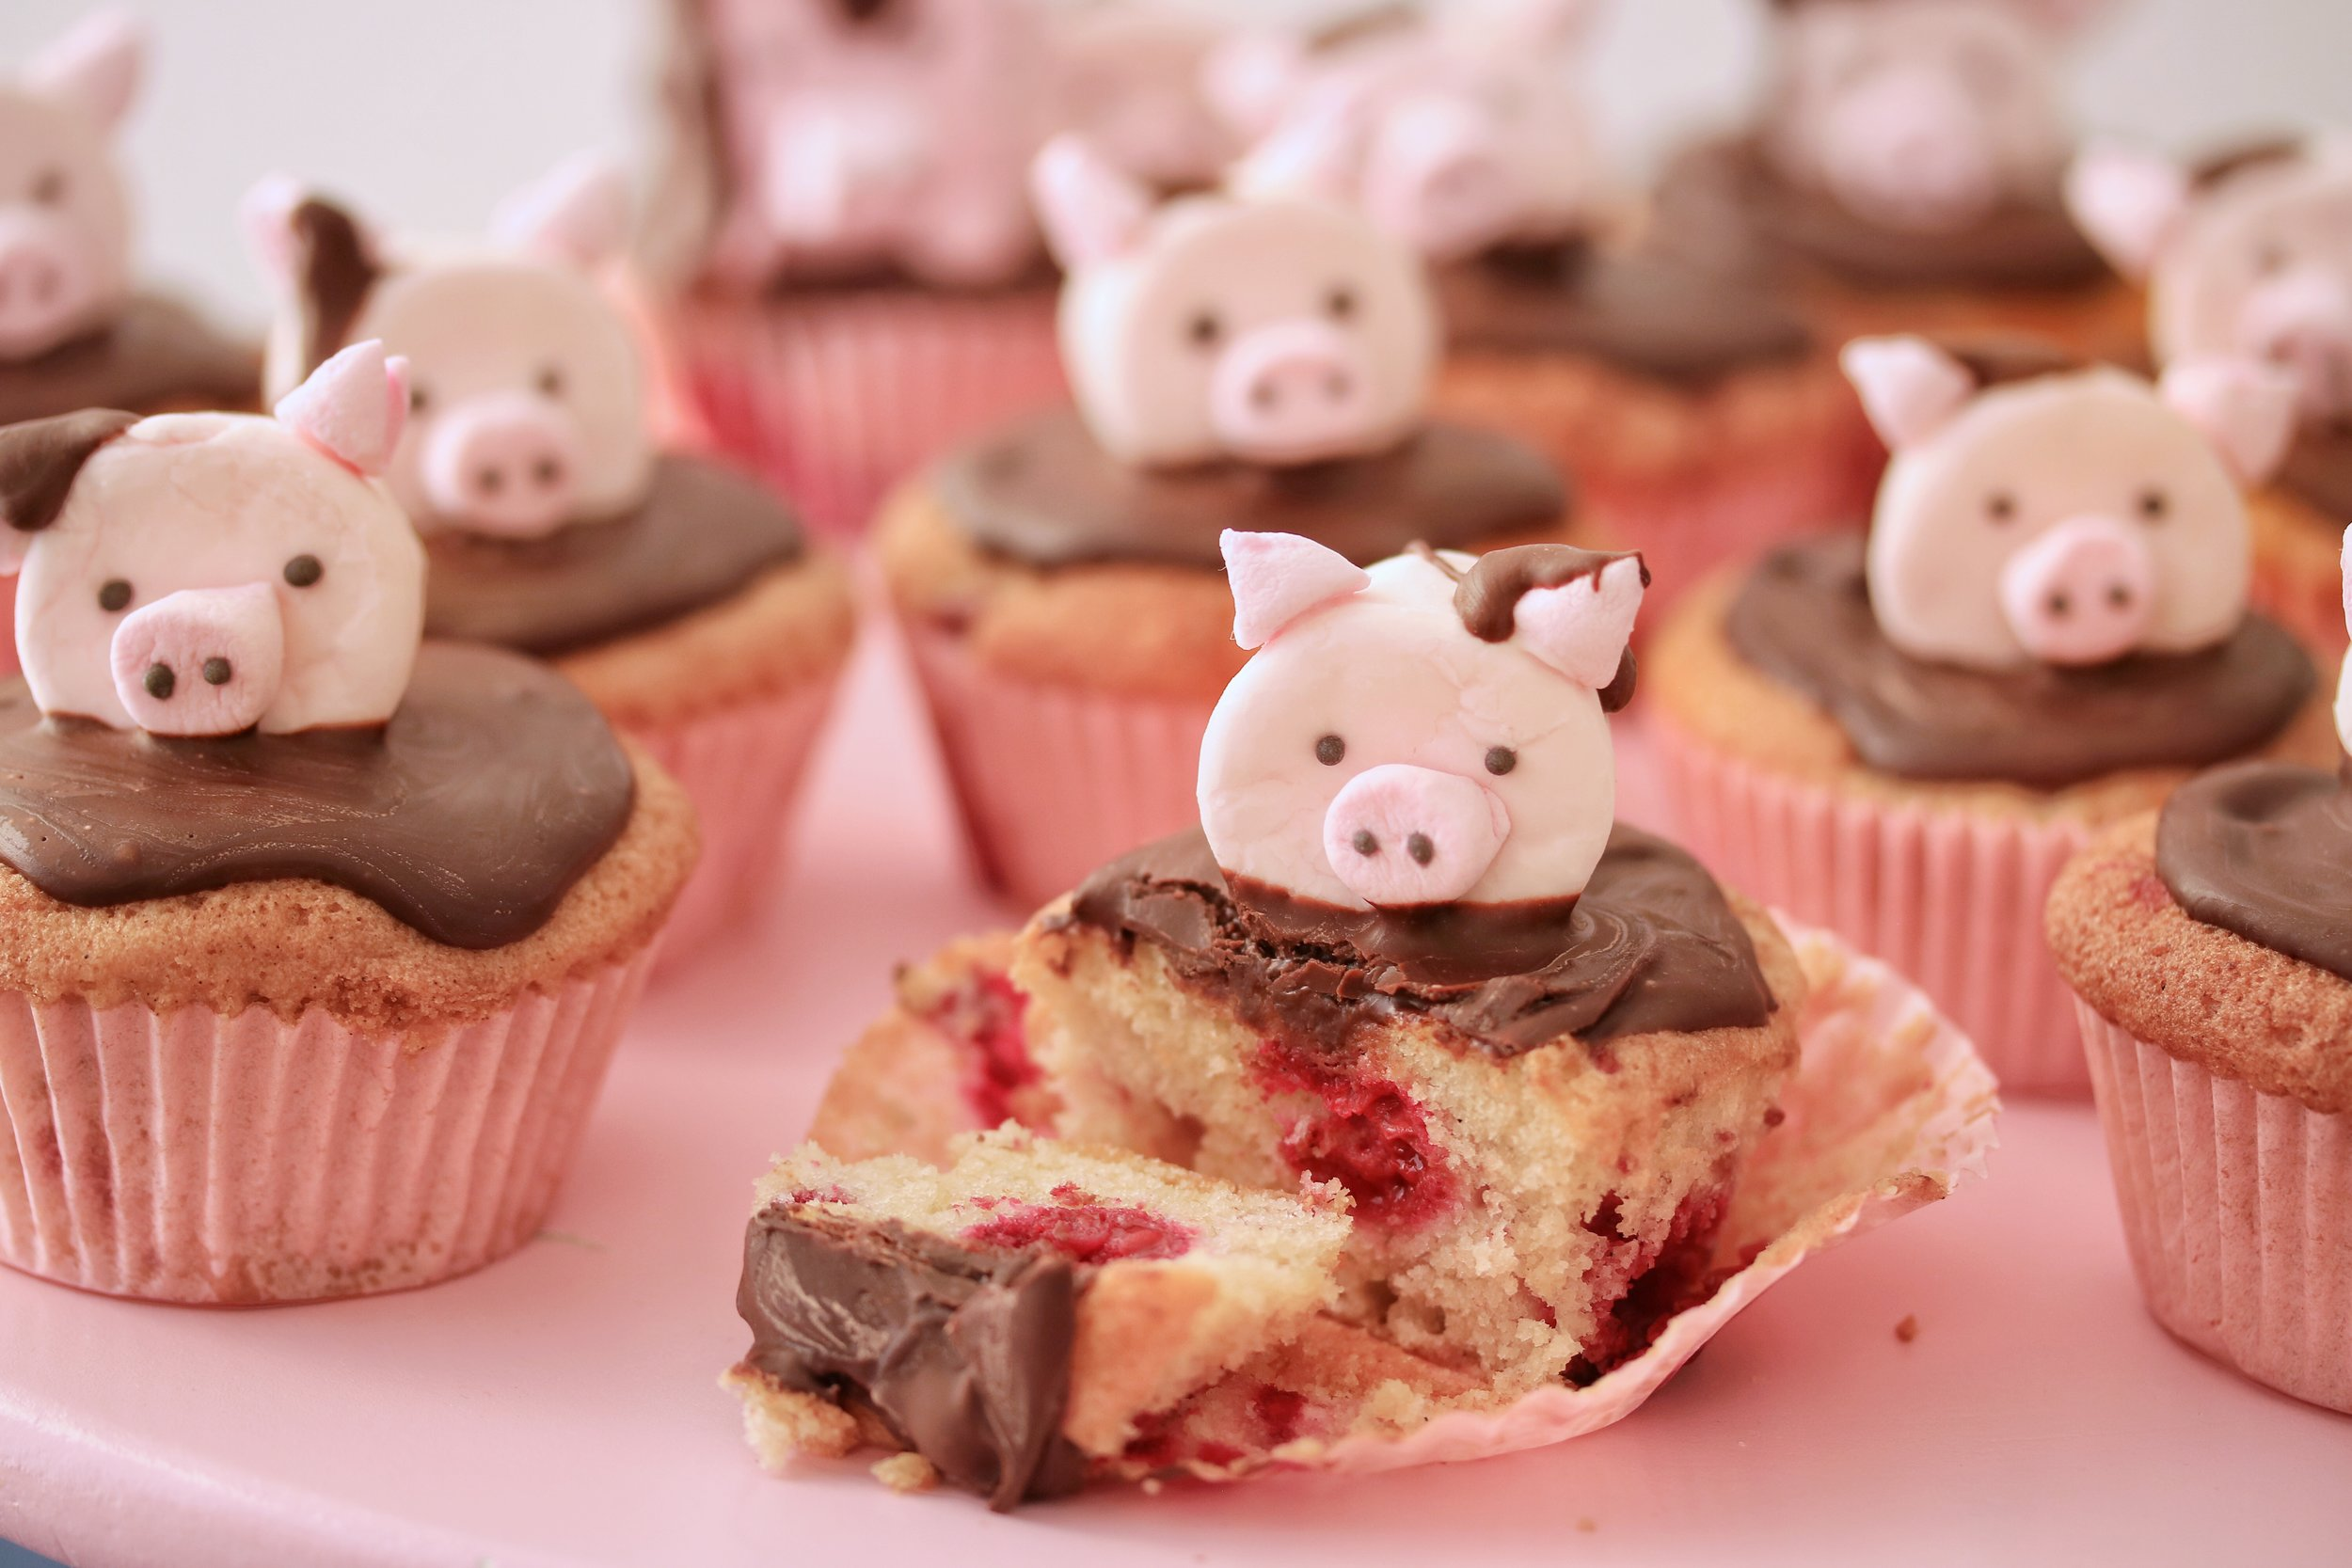 Raspberry and chocolate cupcakes with marshamallow 'pig' topper